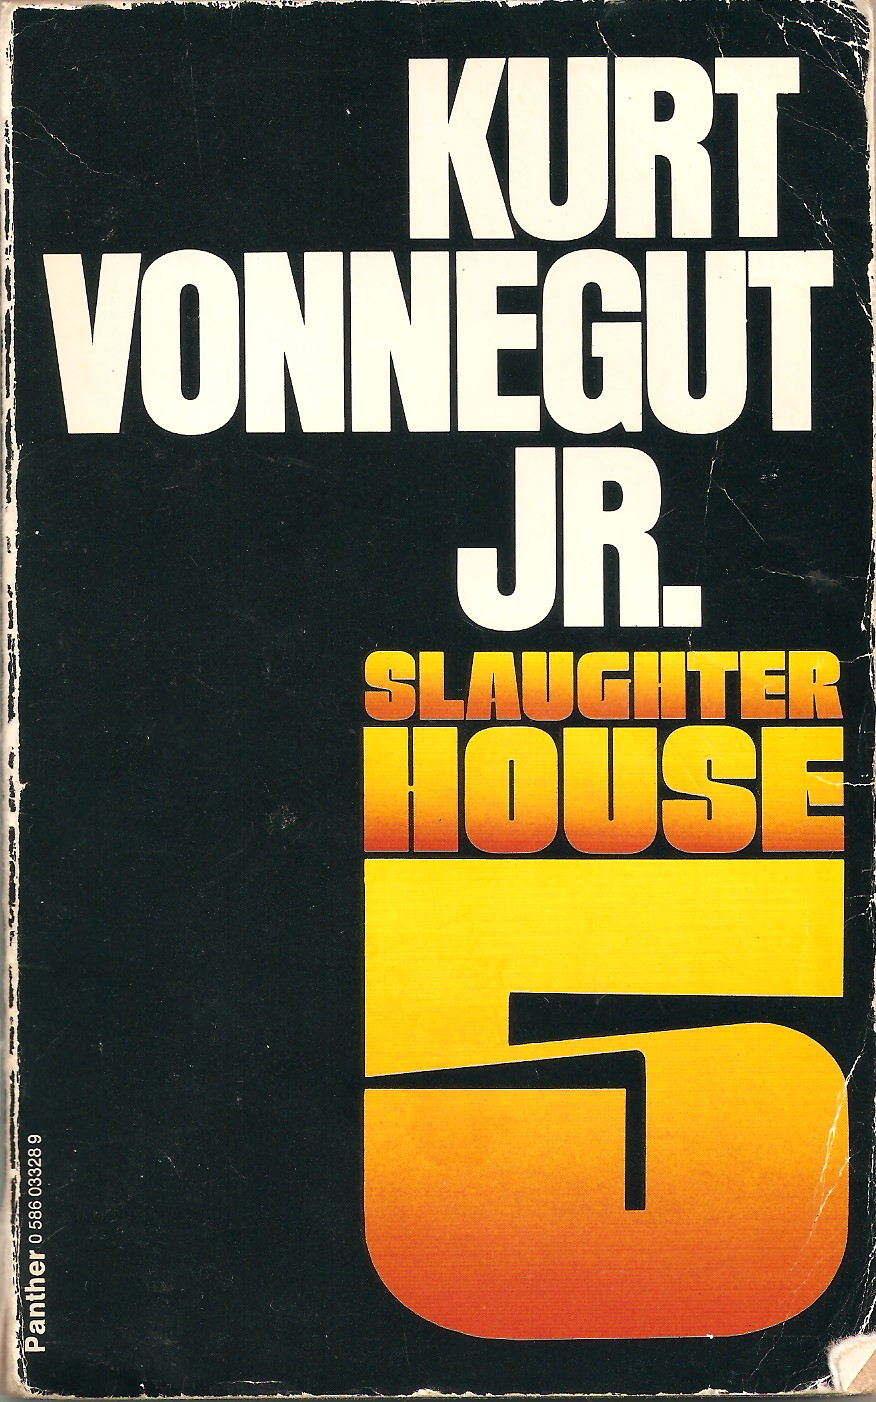 Slaughterhouse five and war